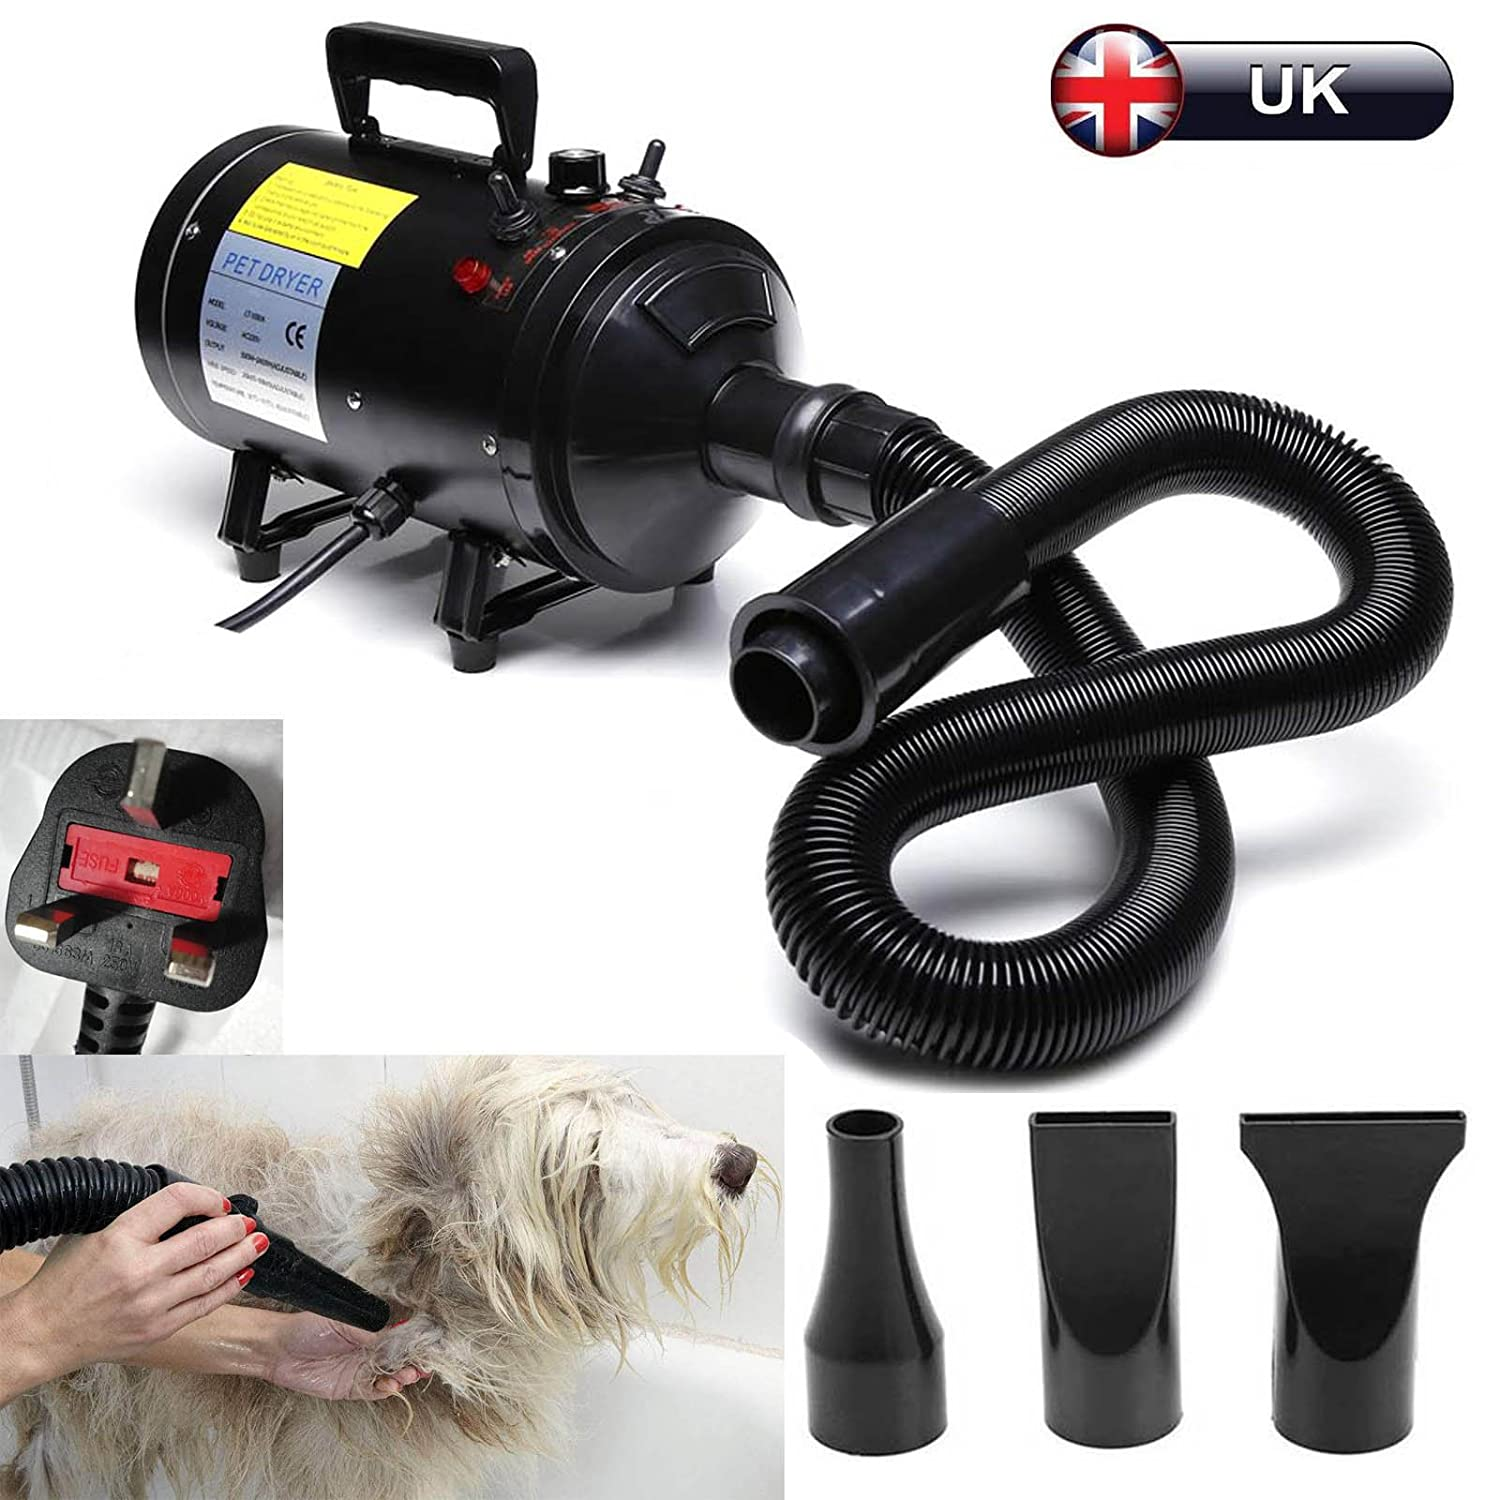 Pet Dryer 2800W Stepless Speed Dog Grooming Hair Fur Dryer Cat Hairdryer Professional Heater Blaster Snow Blower with 3 Nozzles UK Standard Plug